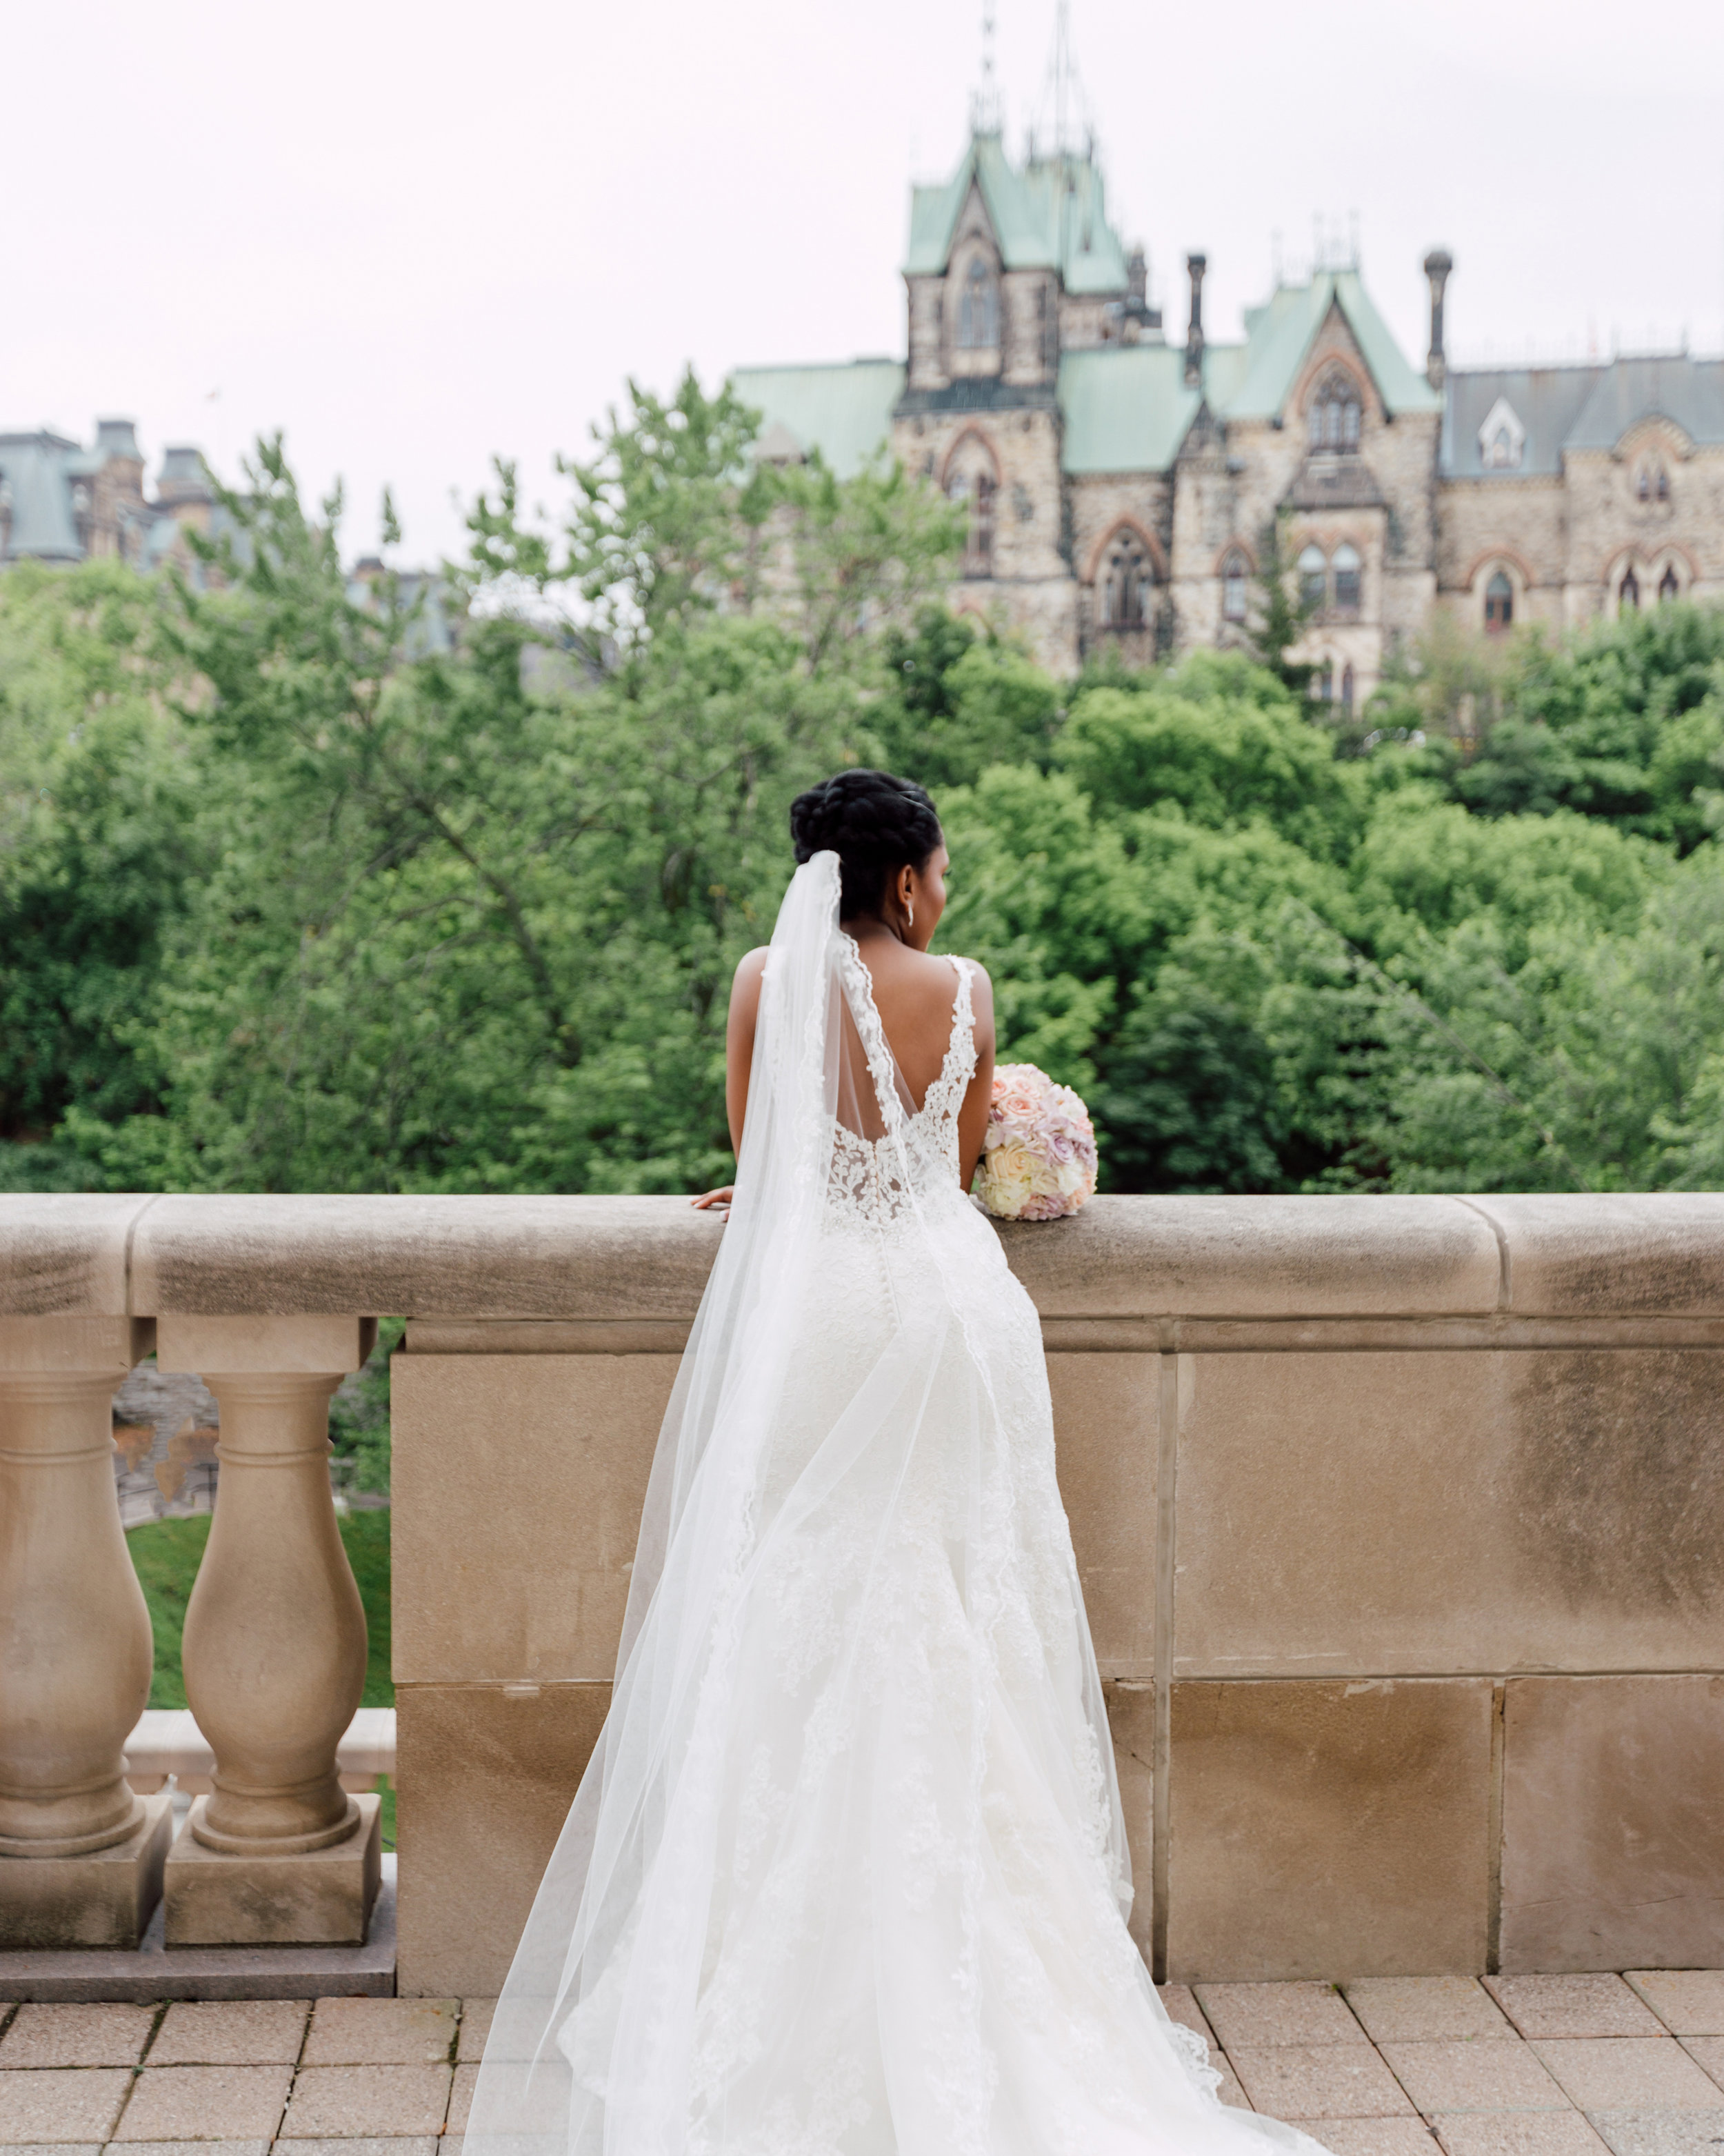 Bride waiting for groom at here castle in canada for wedding photography